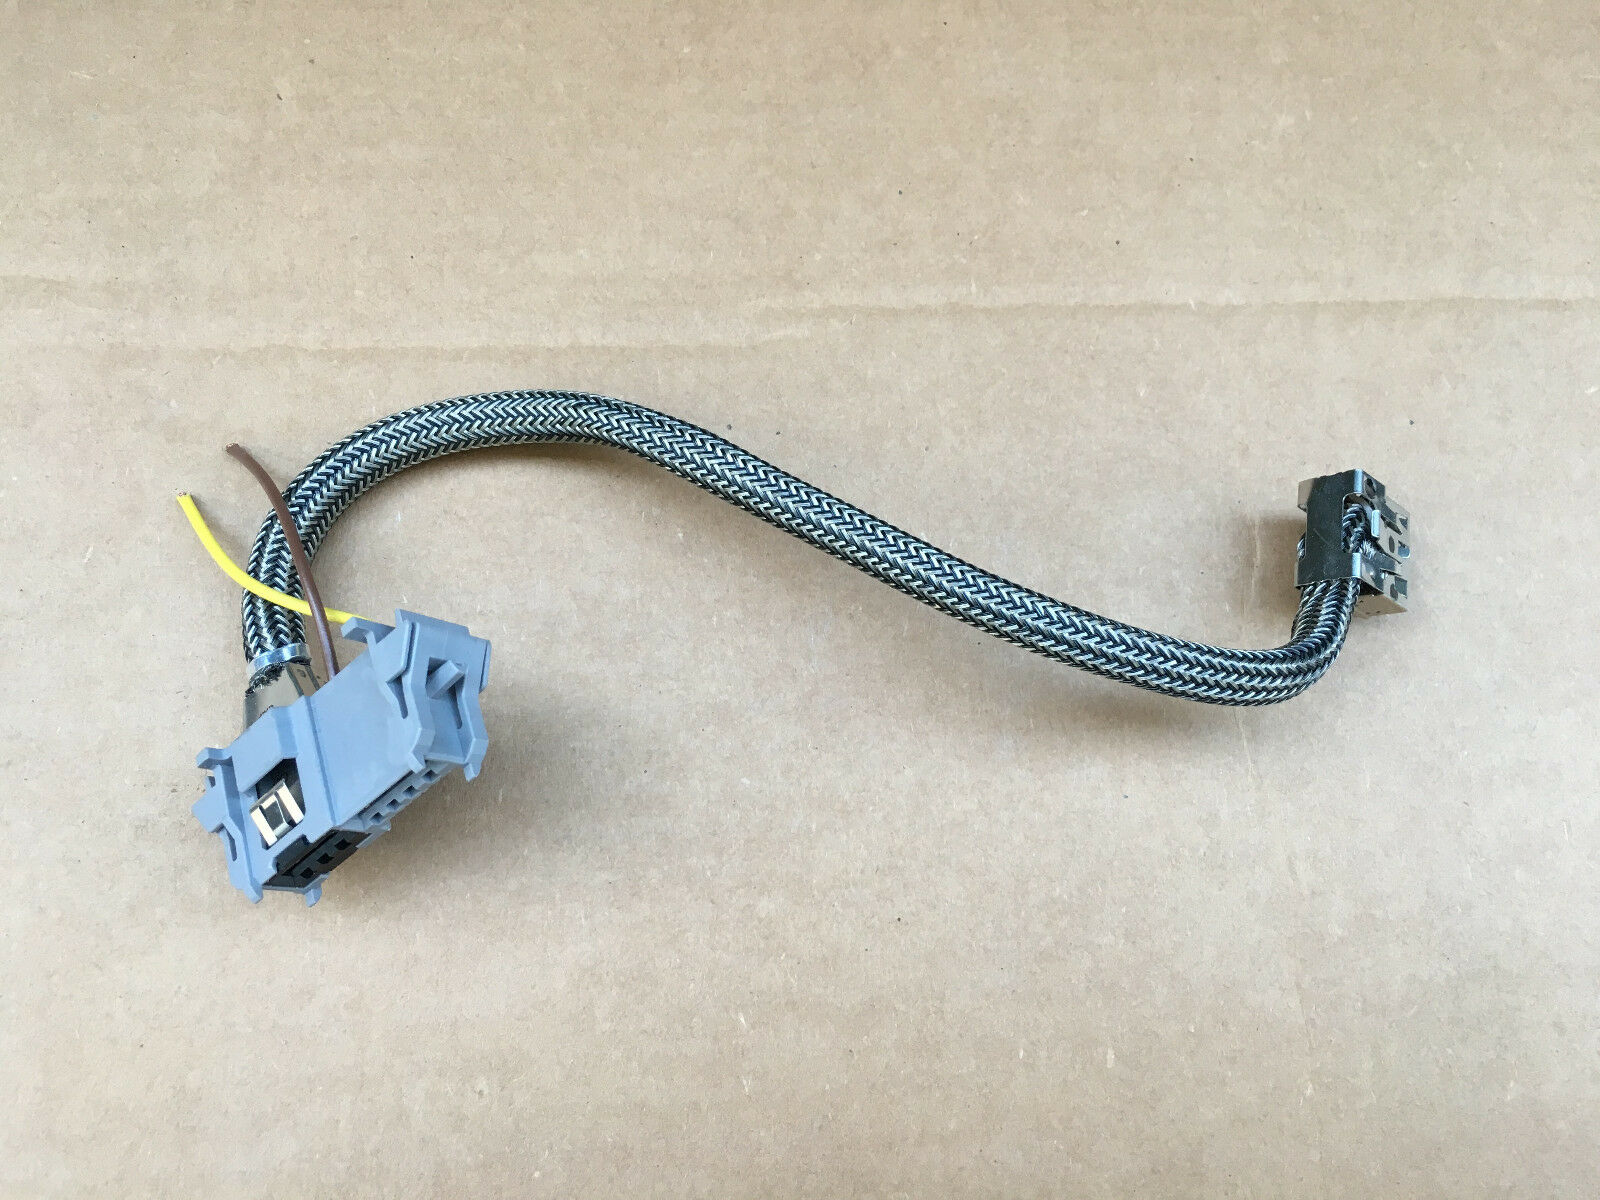 used headlight wiring harnesses for the jeep grand cherokee laredo Headlight Wiring Harness For 2005 Jeep Grand Cherokee valeo 7g d3s d3r xenon ballast plug connector wiring harness wire pig tail Jeep Cherokee Wiring Schematic